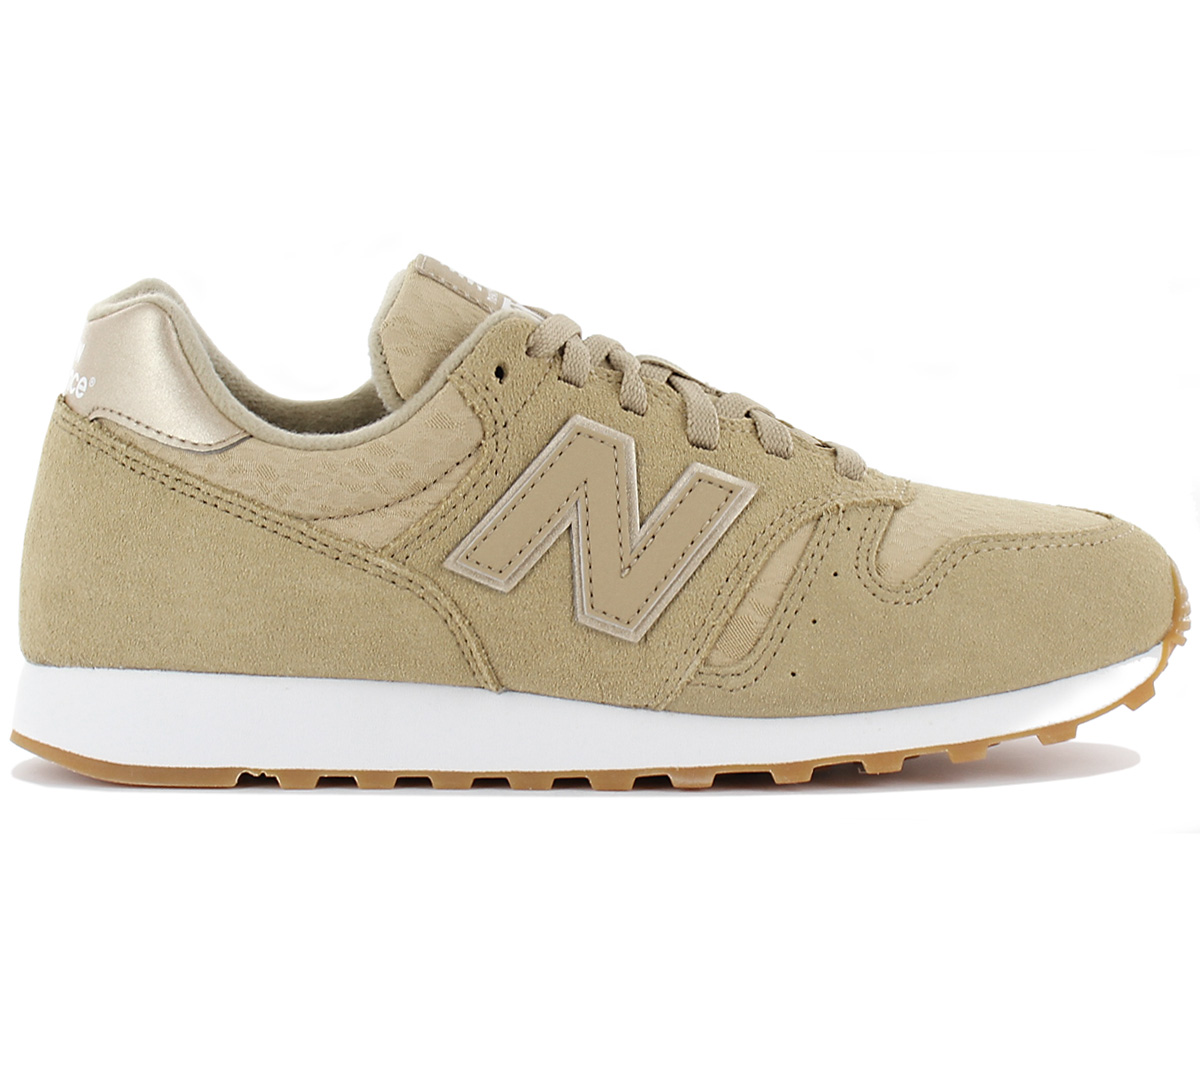 reputable site f8ec5 9ba6e Details about New Balance Classics 373 WL373OIT Women's Sneaker Beige Shoes  Shoe WL373 New